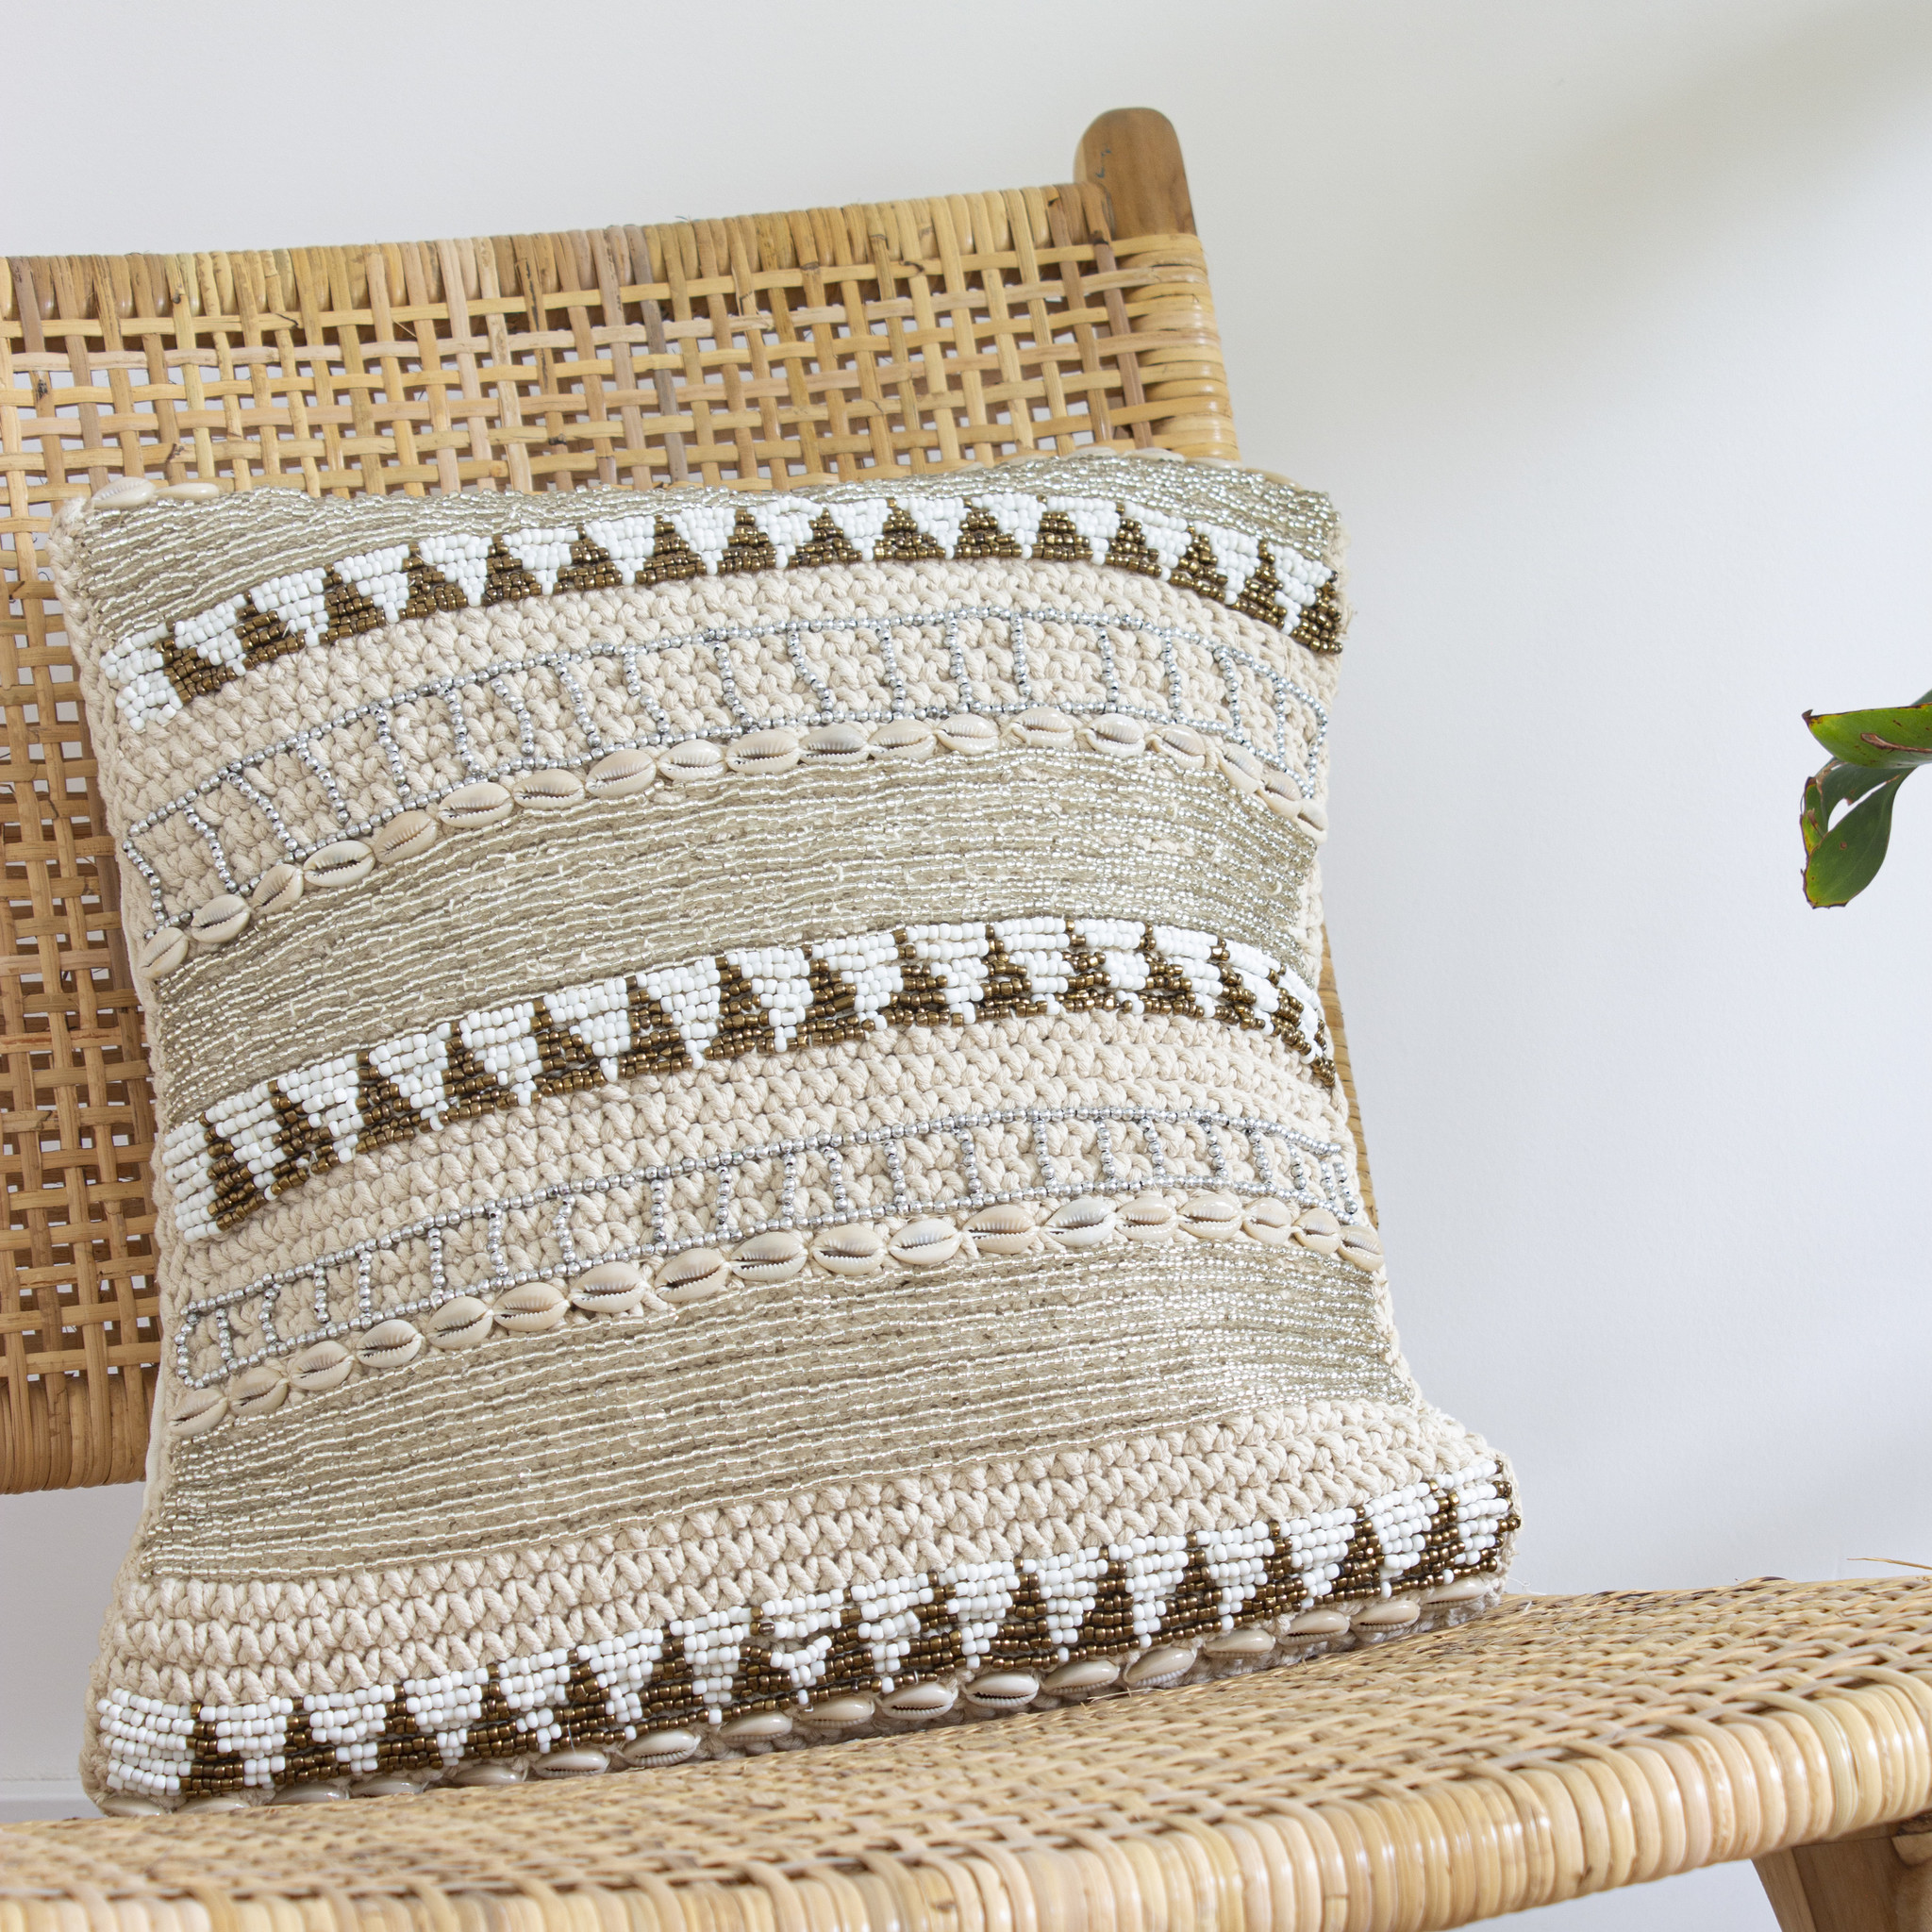 Handcrafted cushion with beads (Set of 2)